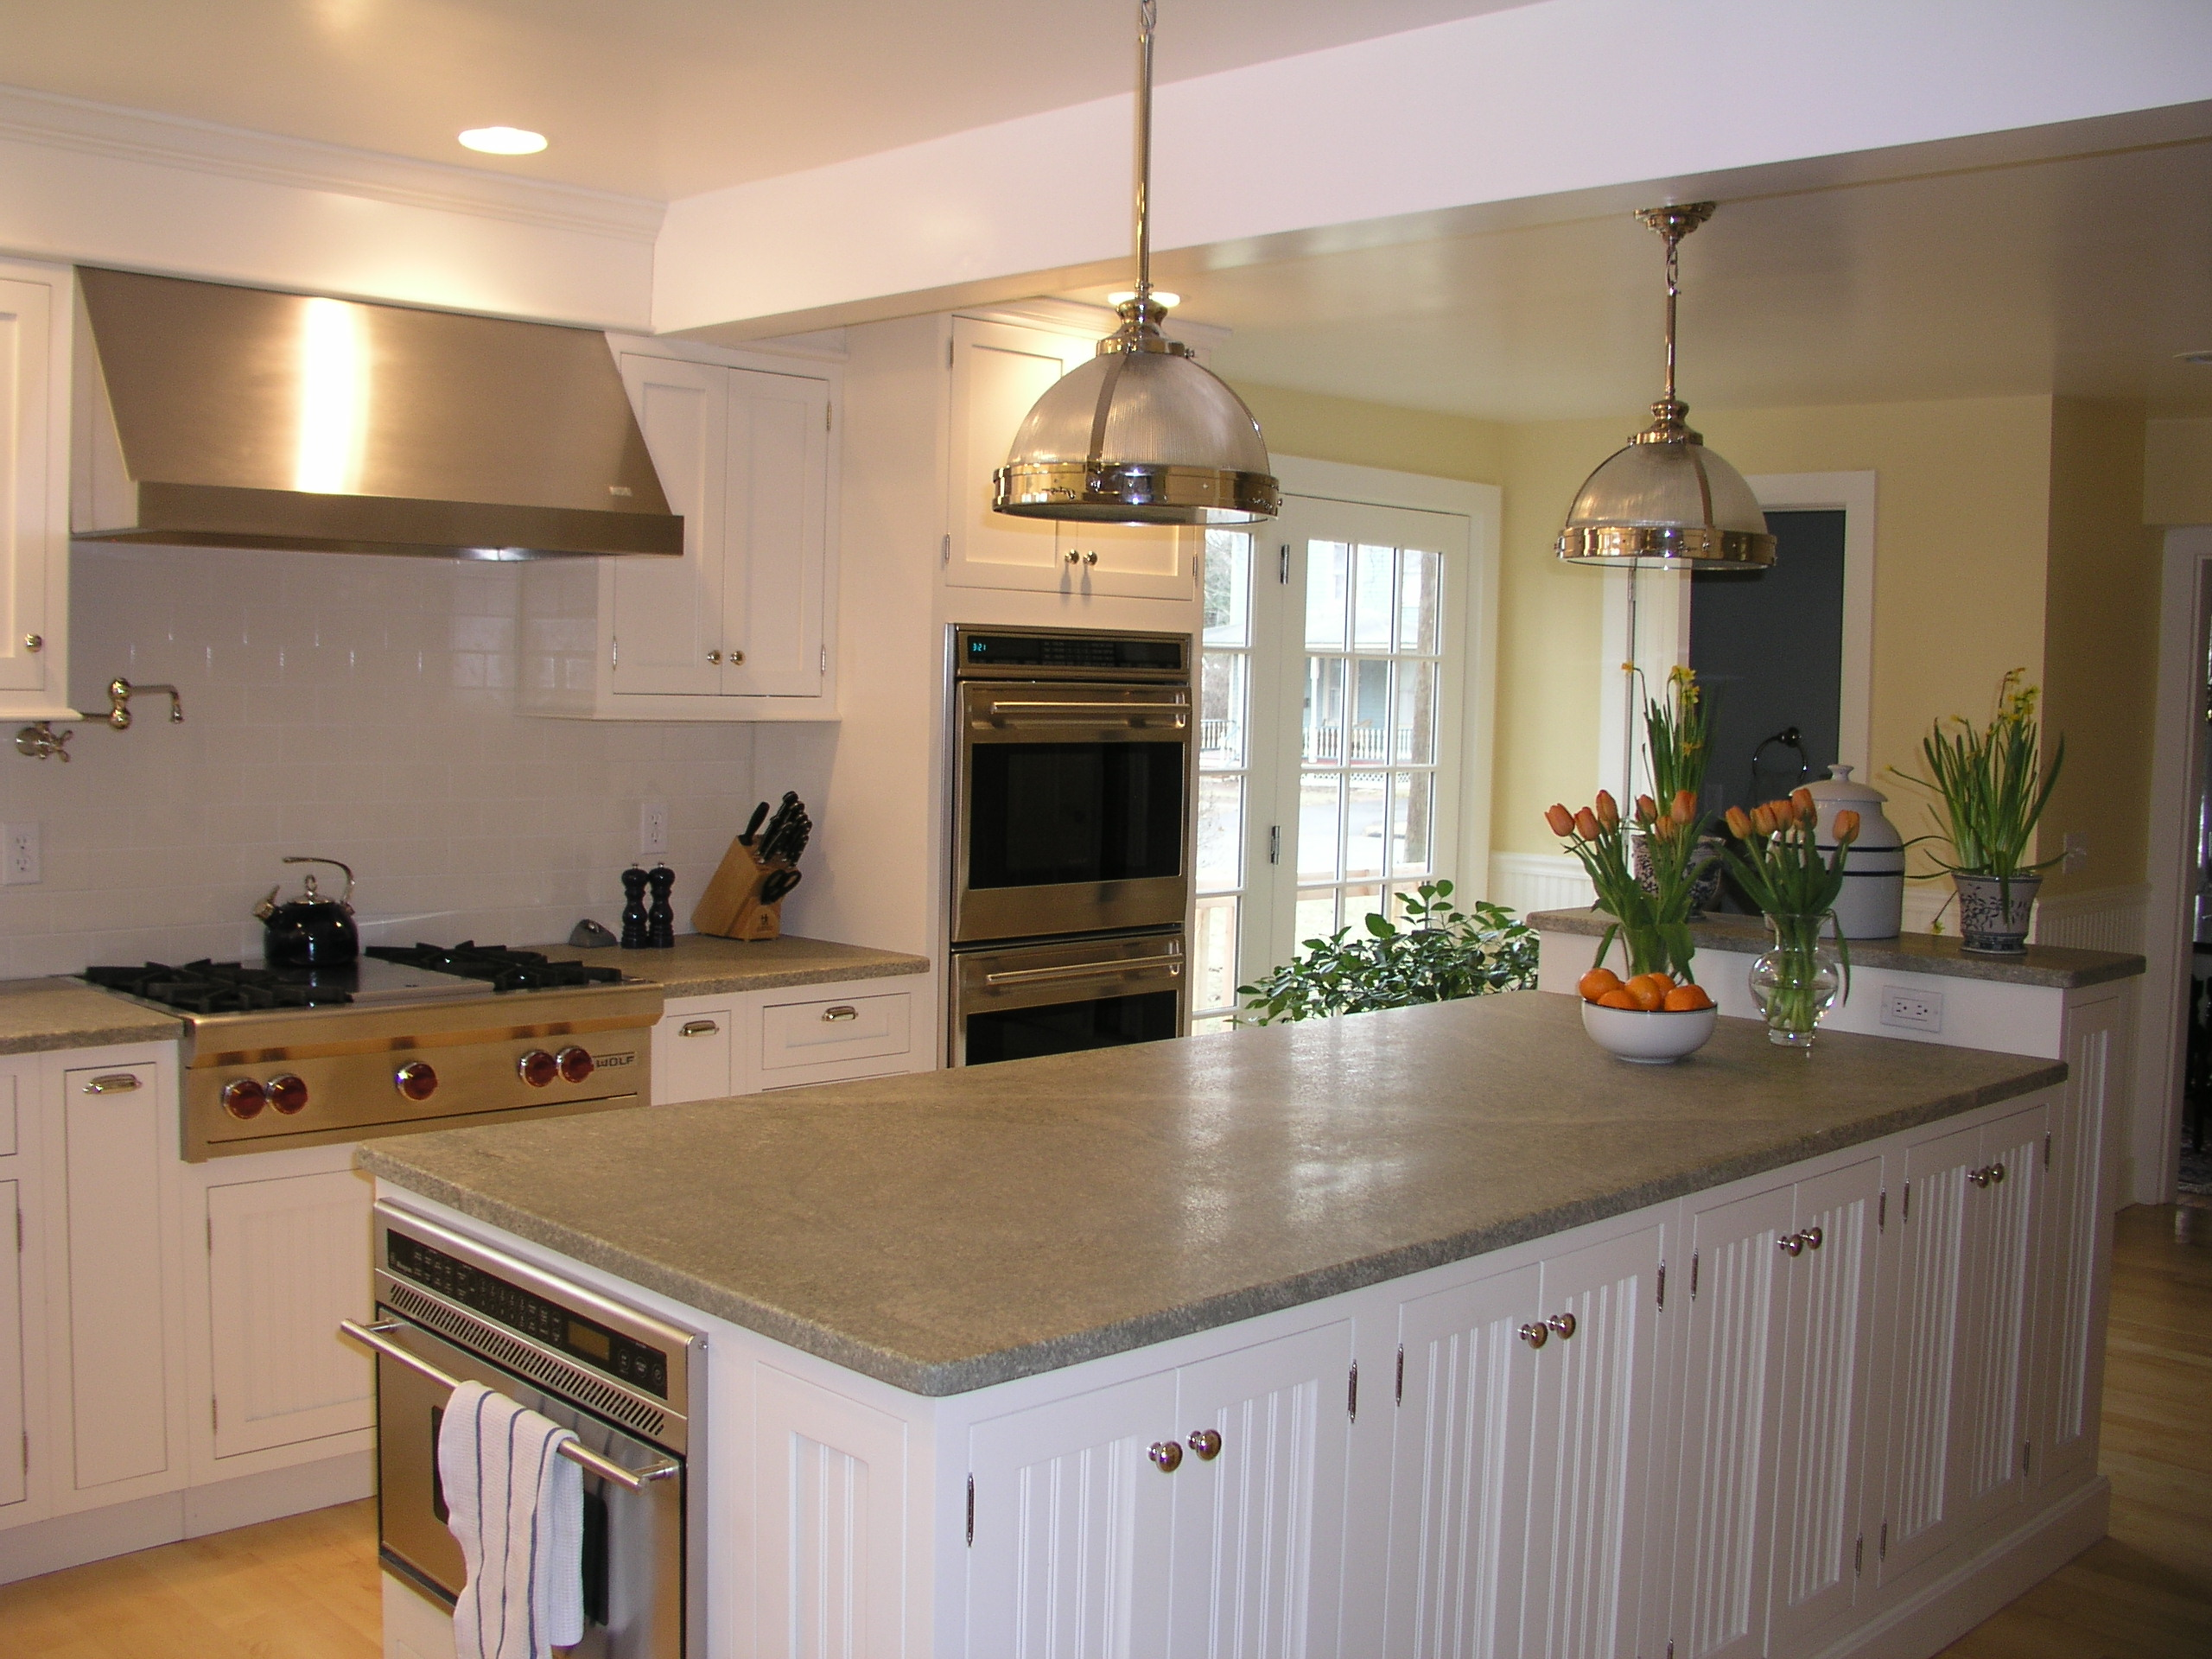 Shoreline Kitchen Kitchen Design Center